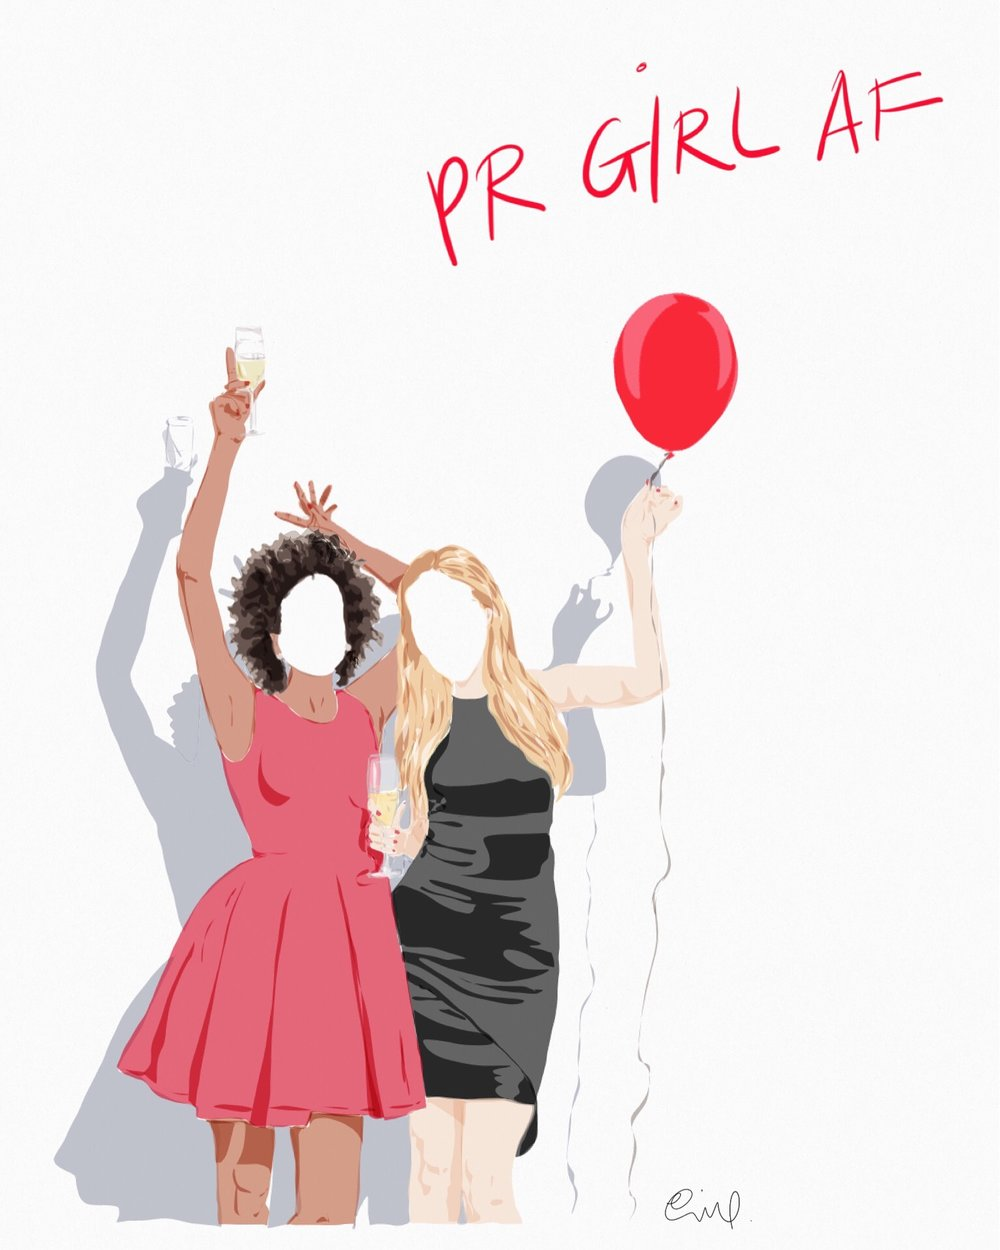 Limited edition print for PR GIRL MANIFESTO event - NYC